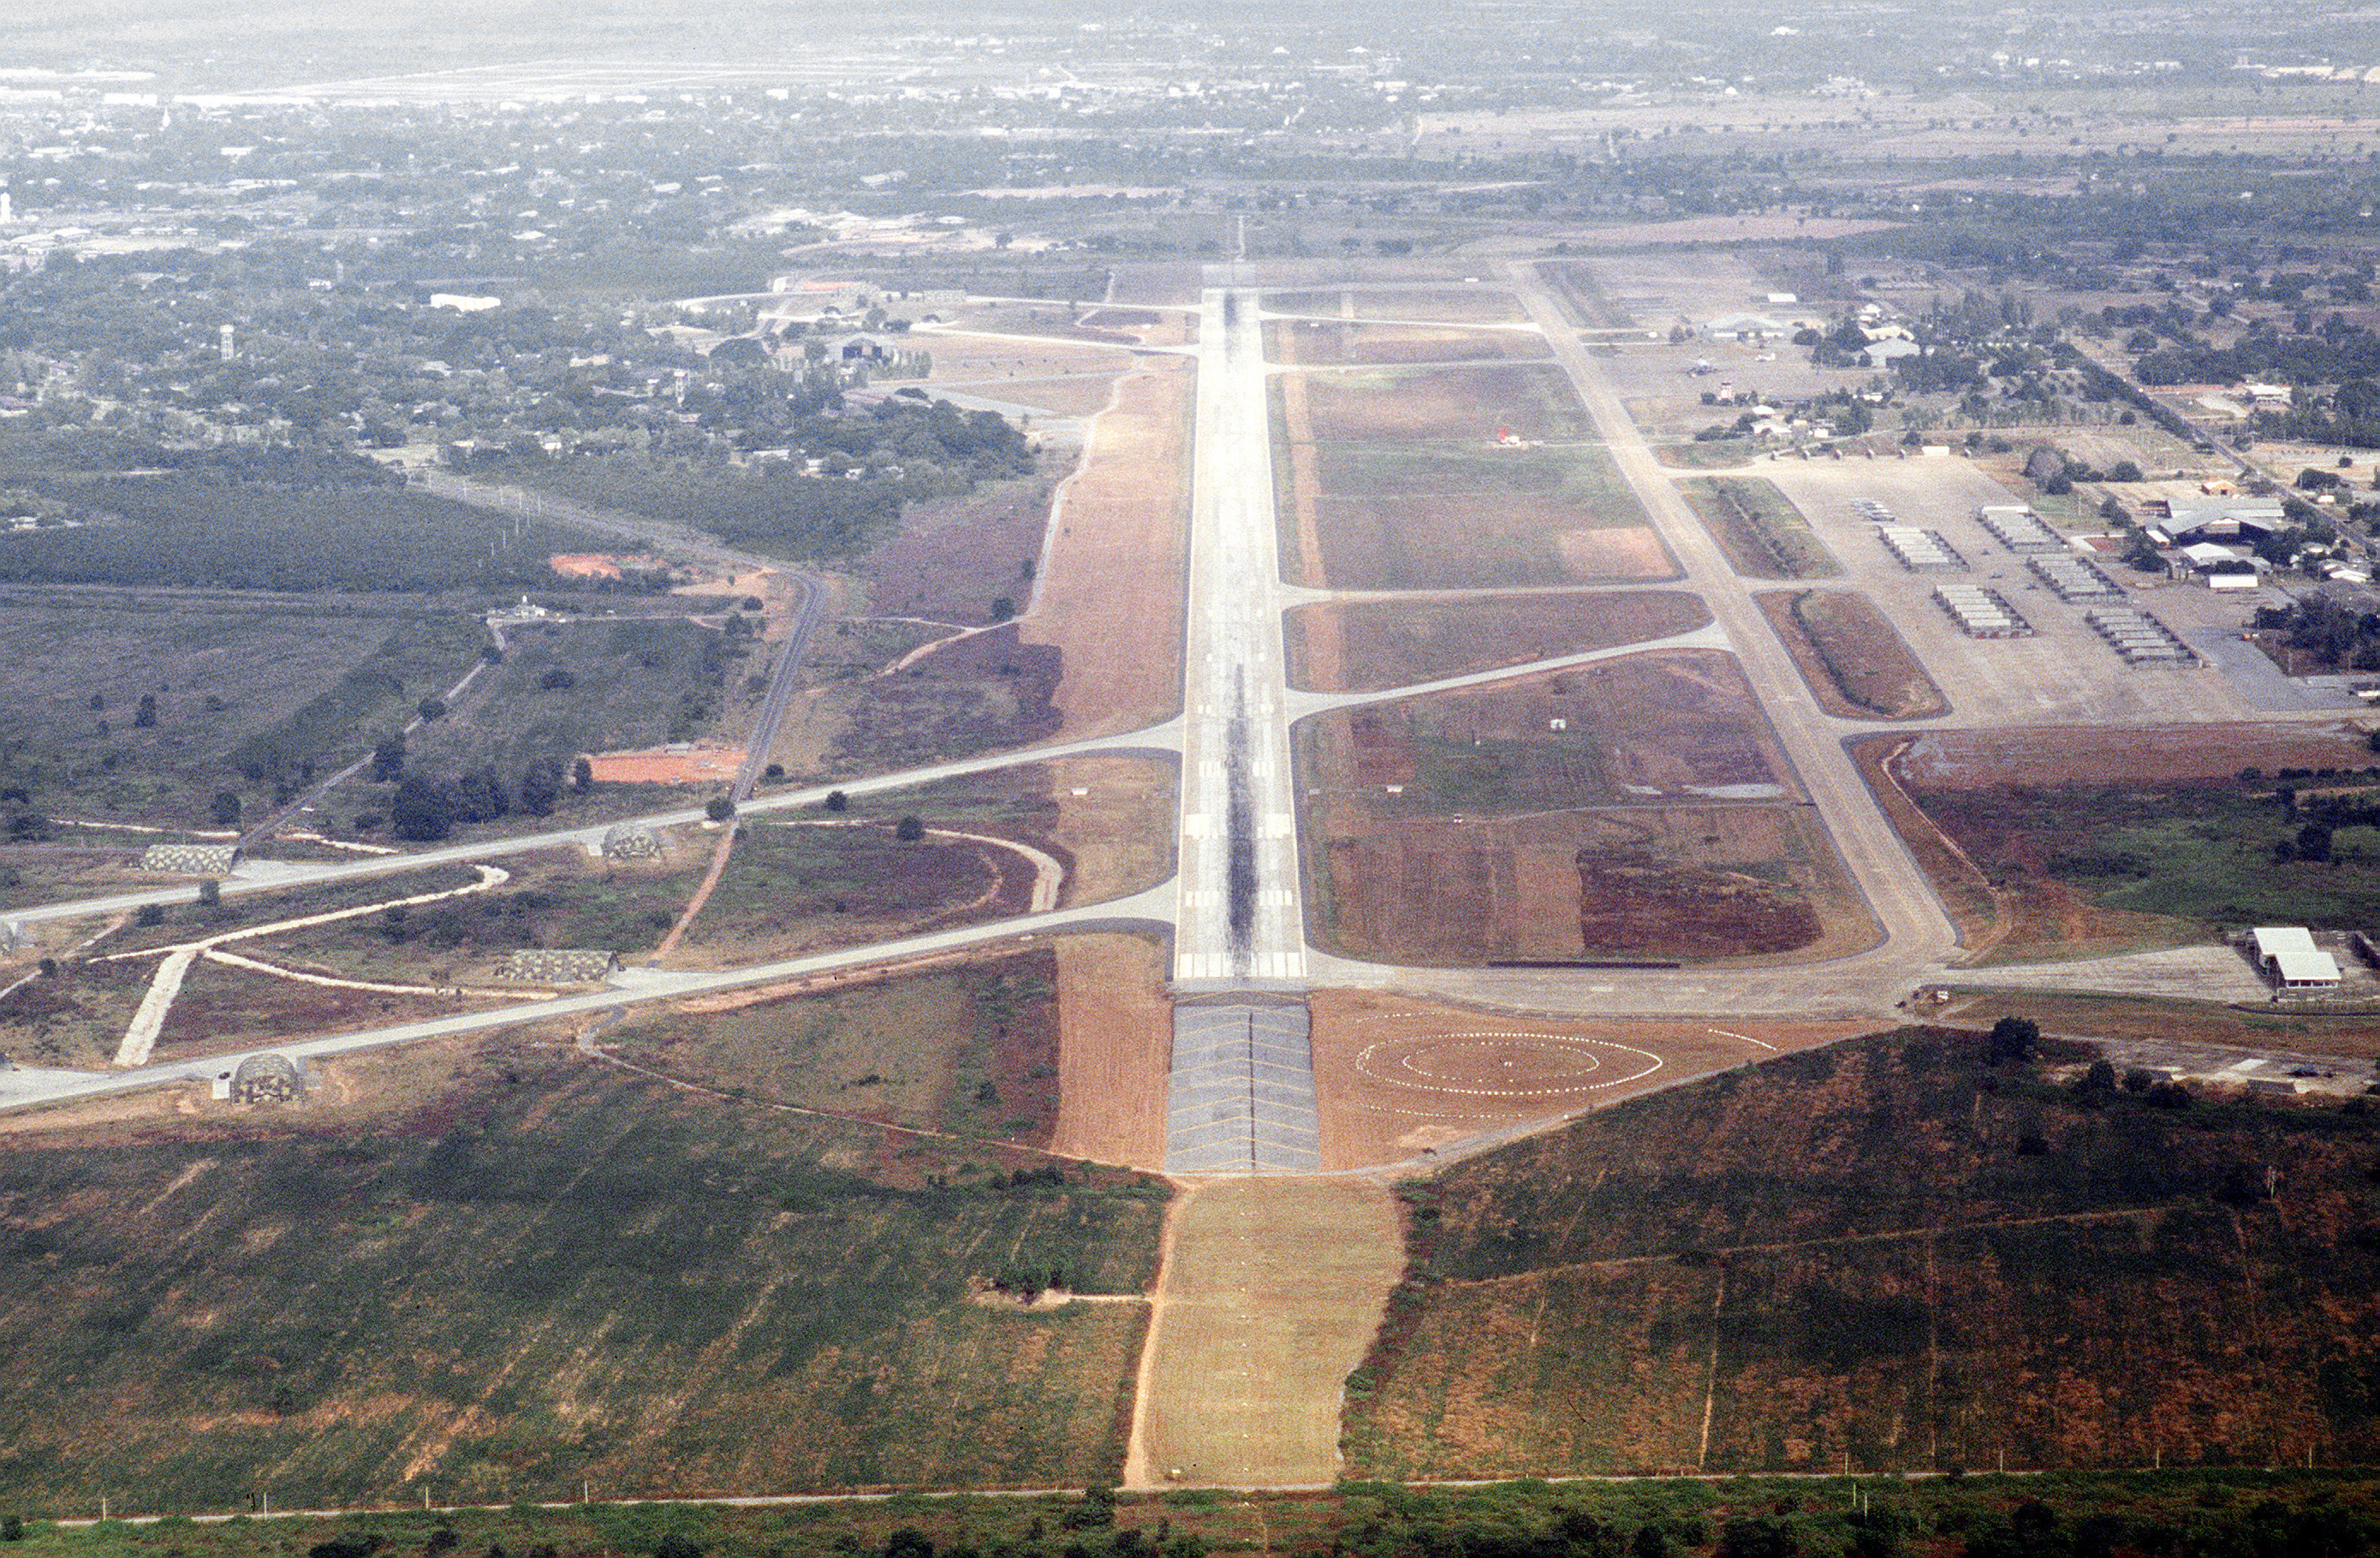 Us Air Force Base Thailand http://en.wikipedia.org/wiki/File:Korat_Royal_Thai_Air_Force_Base_-_overhead.jpg